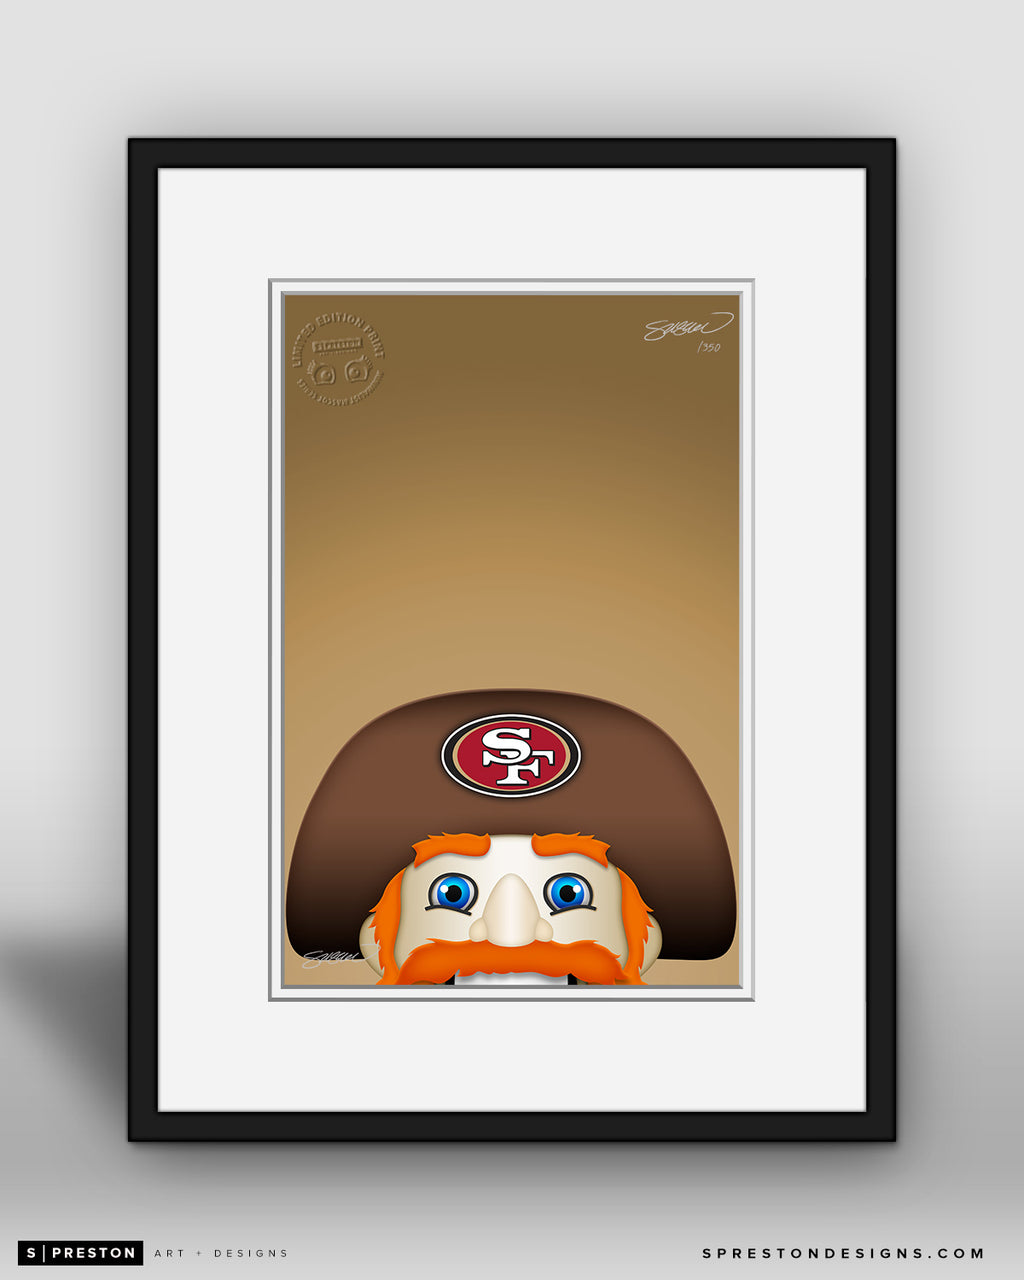 Minimalist Sourdough Sam San Francisco Giants Mascot - S. Preston